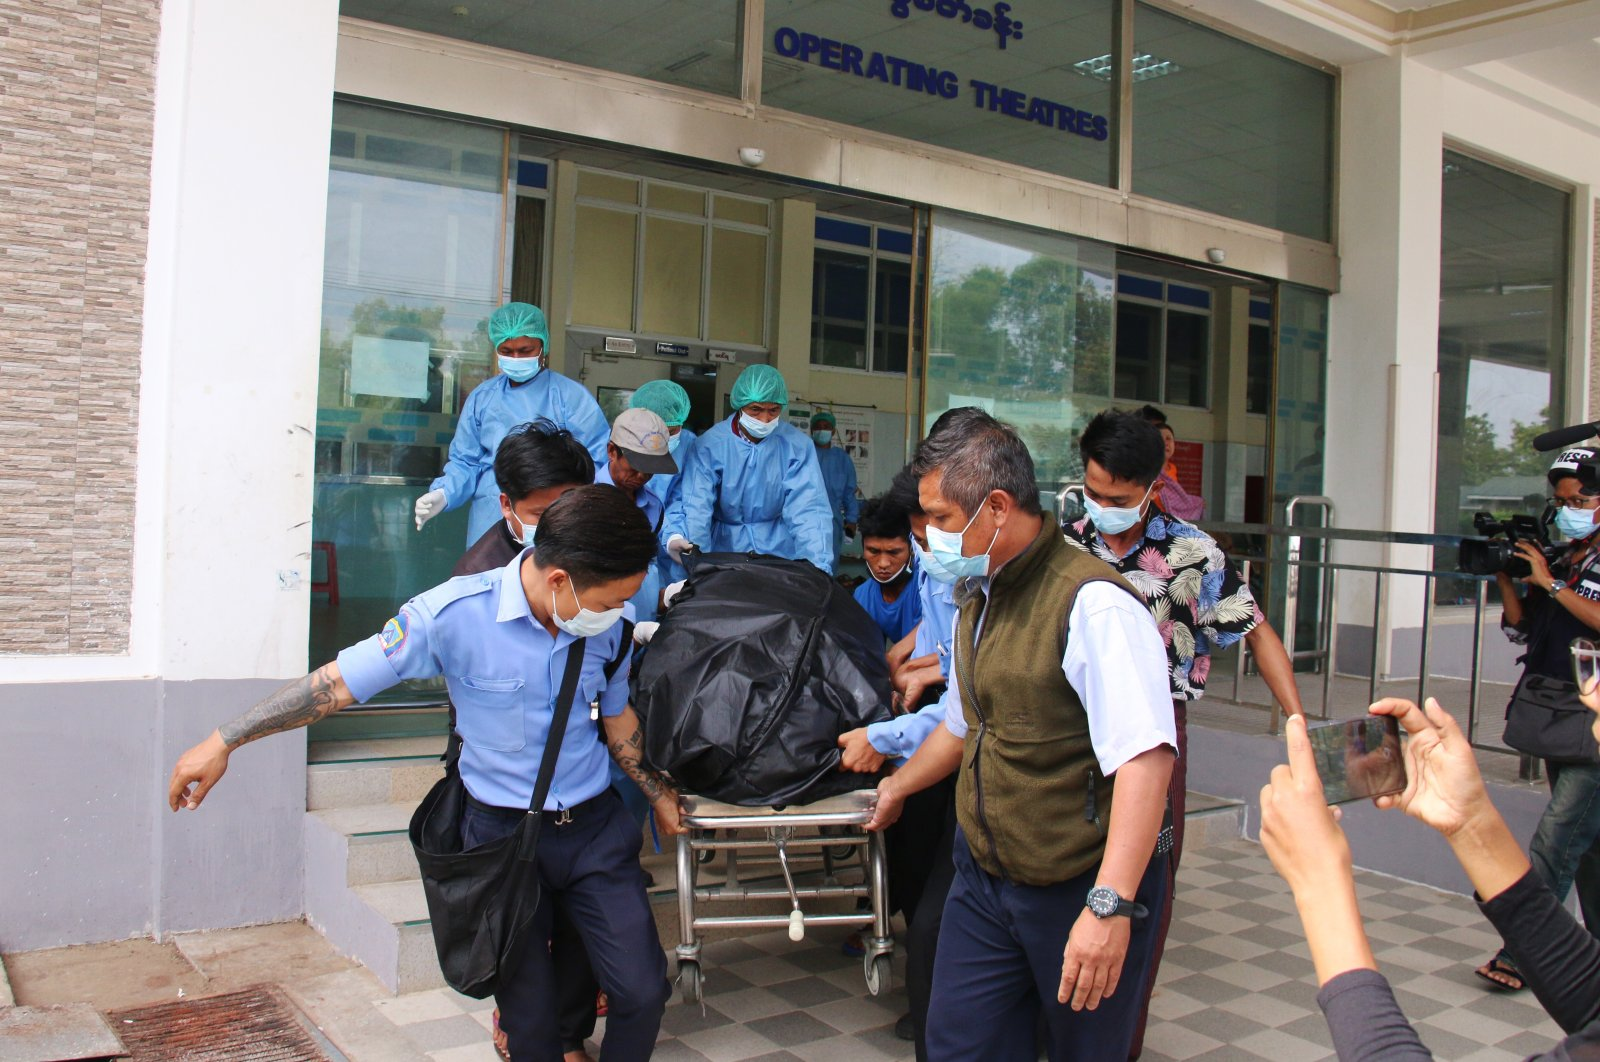 Hospital staff carry the body of Mya Thwe Thwe Khaing, a young woman shot in the head in an anti-coup protest, in Naypyitaw, Myanmar, Feb. 19, 2021. (EPA-EFE Photo)